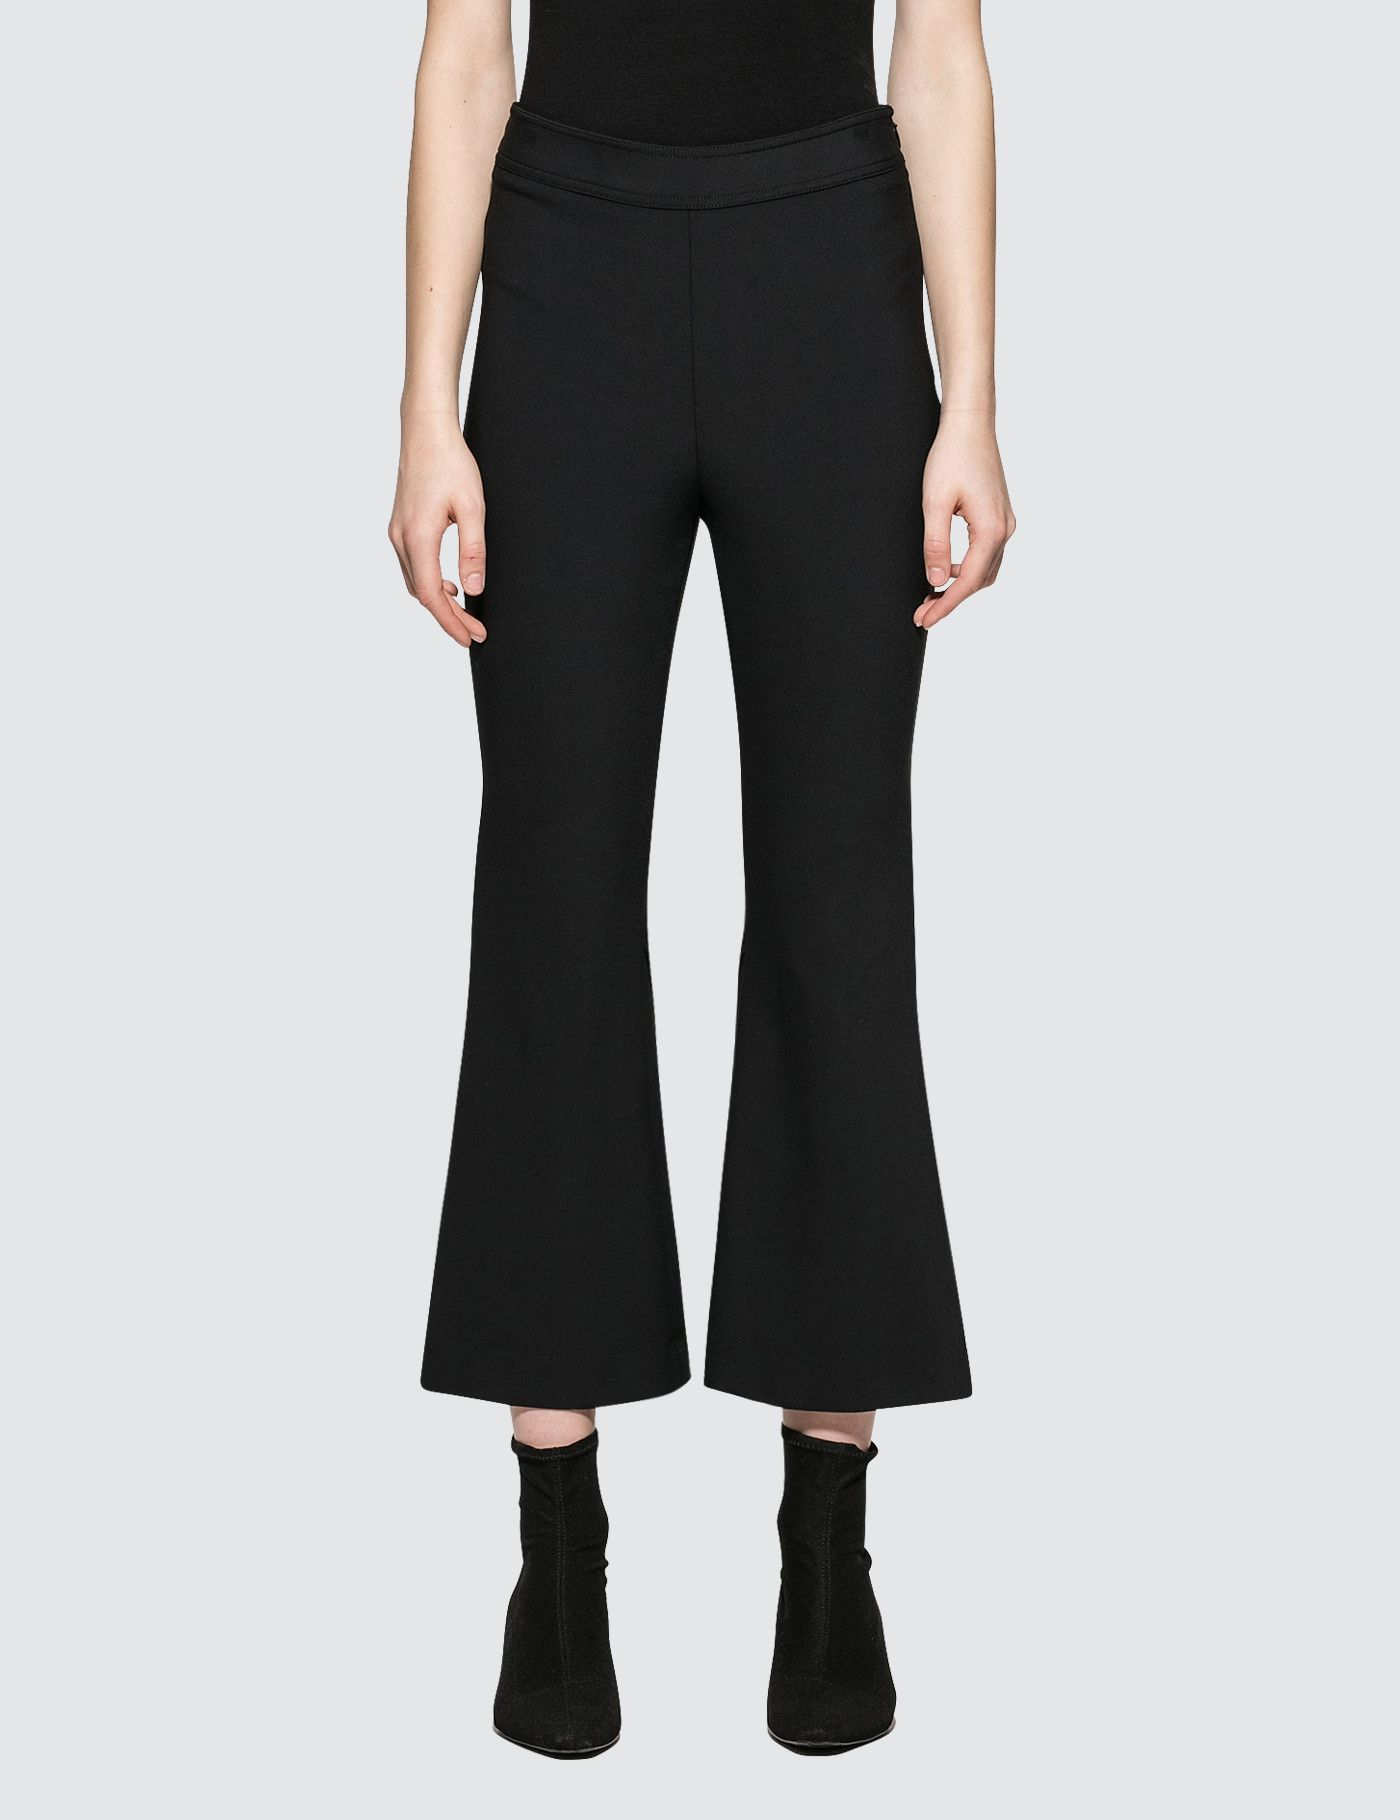 Opening Ceremony - William Back Flare Pants #Ad , #sponsored, #affiliate, #Ceremony, #Pants, #Flare, #Opening